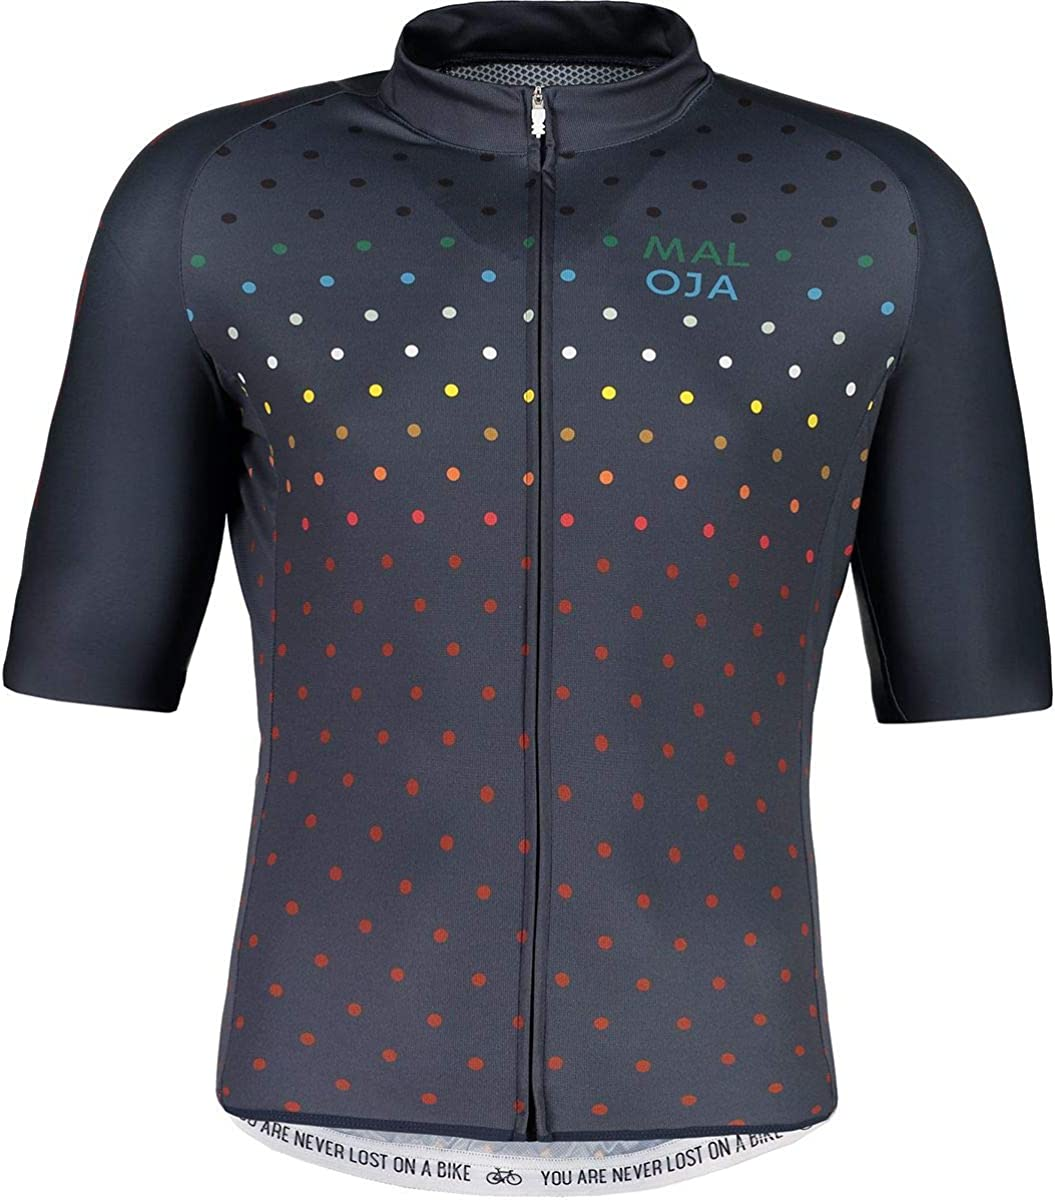 Men mens 27259.0 Jersey 1//2 Technical Jacket for Cycling Maloja Champsm